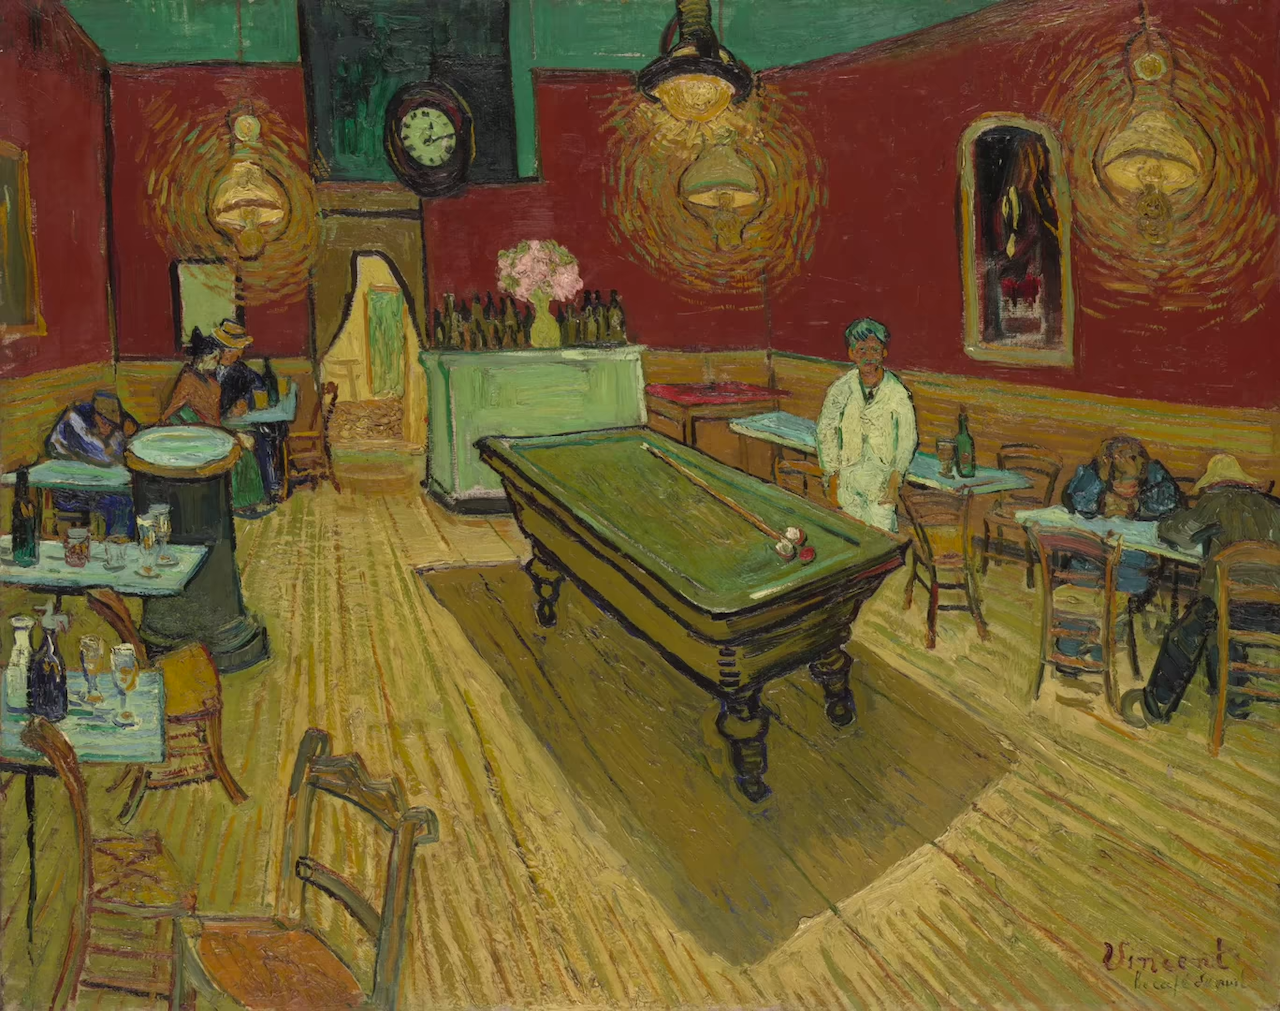 How Vincent Van Gogh Created Optical Anxiety With His Deliberate Use of Conflicting Color in 'Night Café'